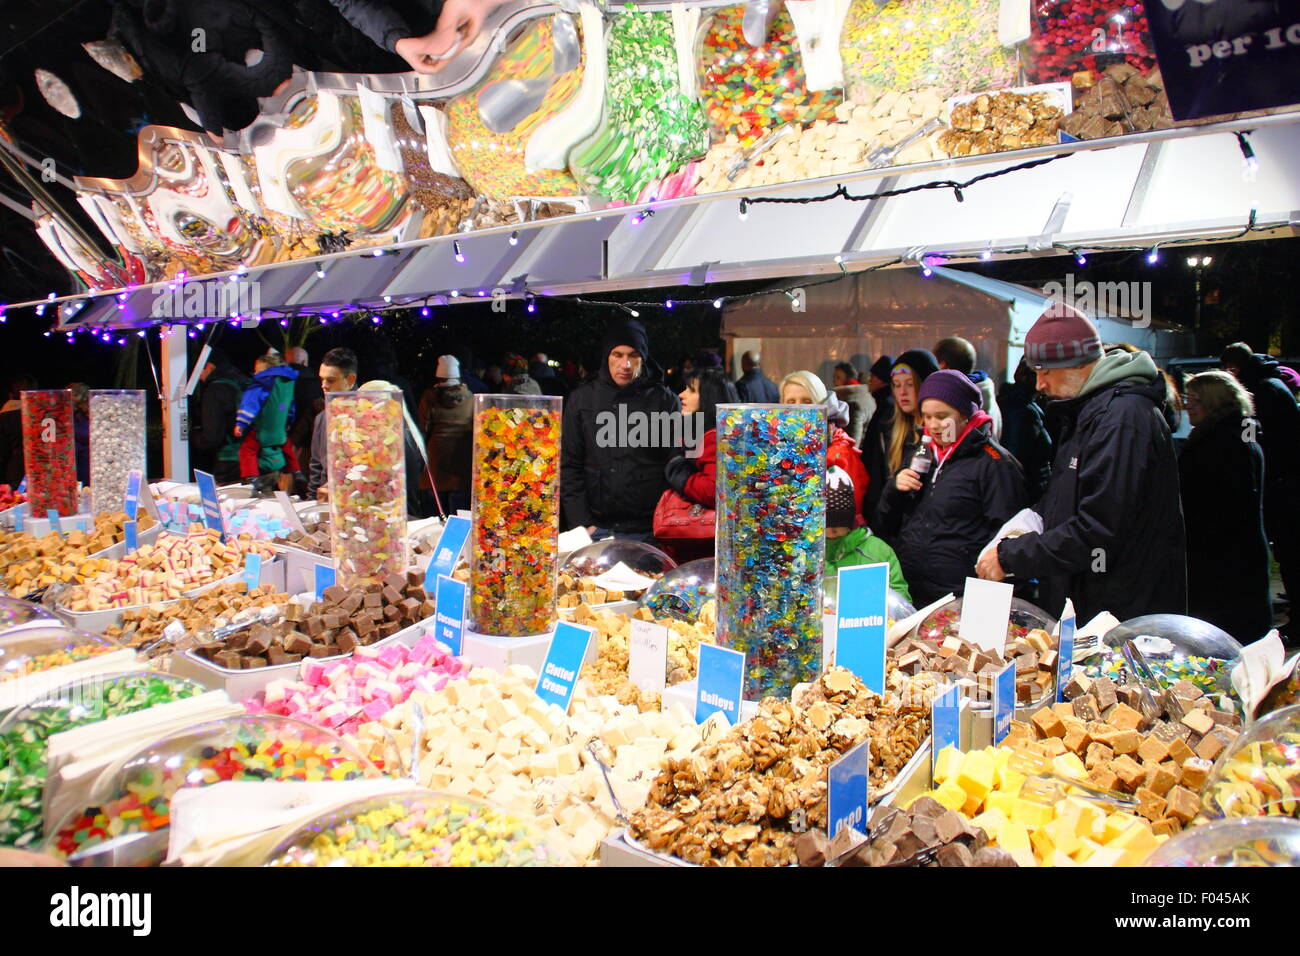 People peruse sweet treats on a confectionery stall at Lincoln Christmas Market, Lincolnshire England UK - Stock Image